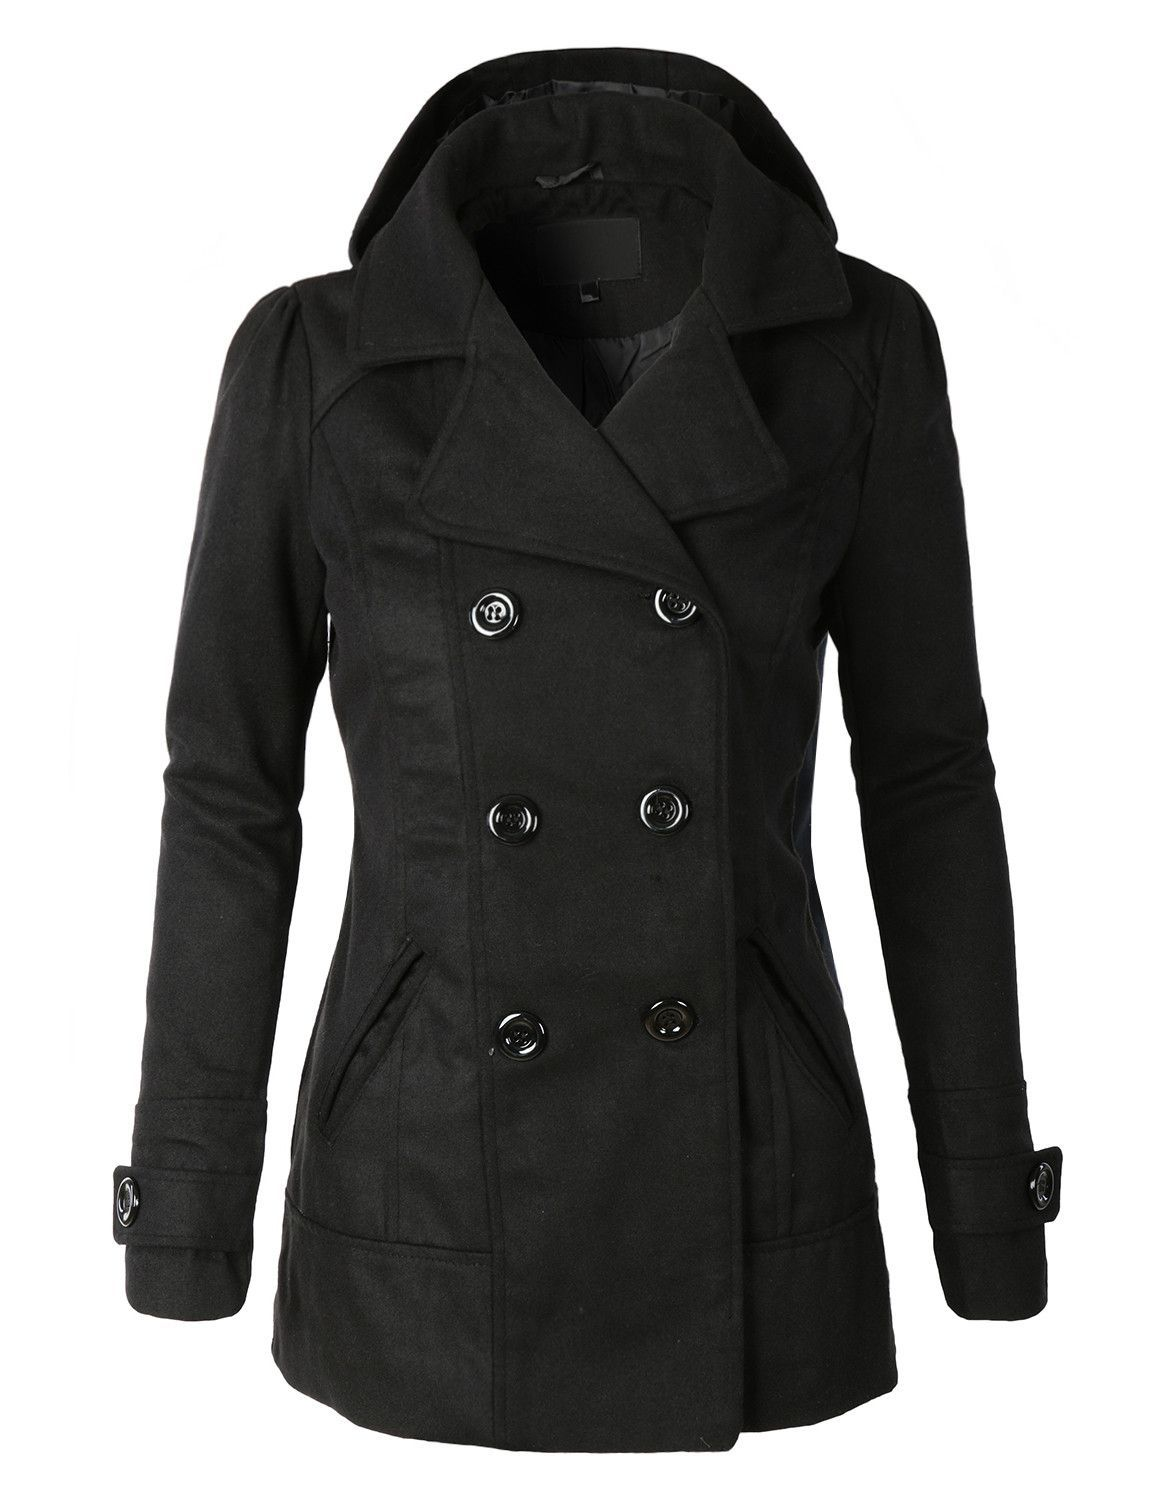 32e70d4fa06c LE3NO Womens Classic Wool Double Breasted Pea Coat Jacket With Hoodie  33.00